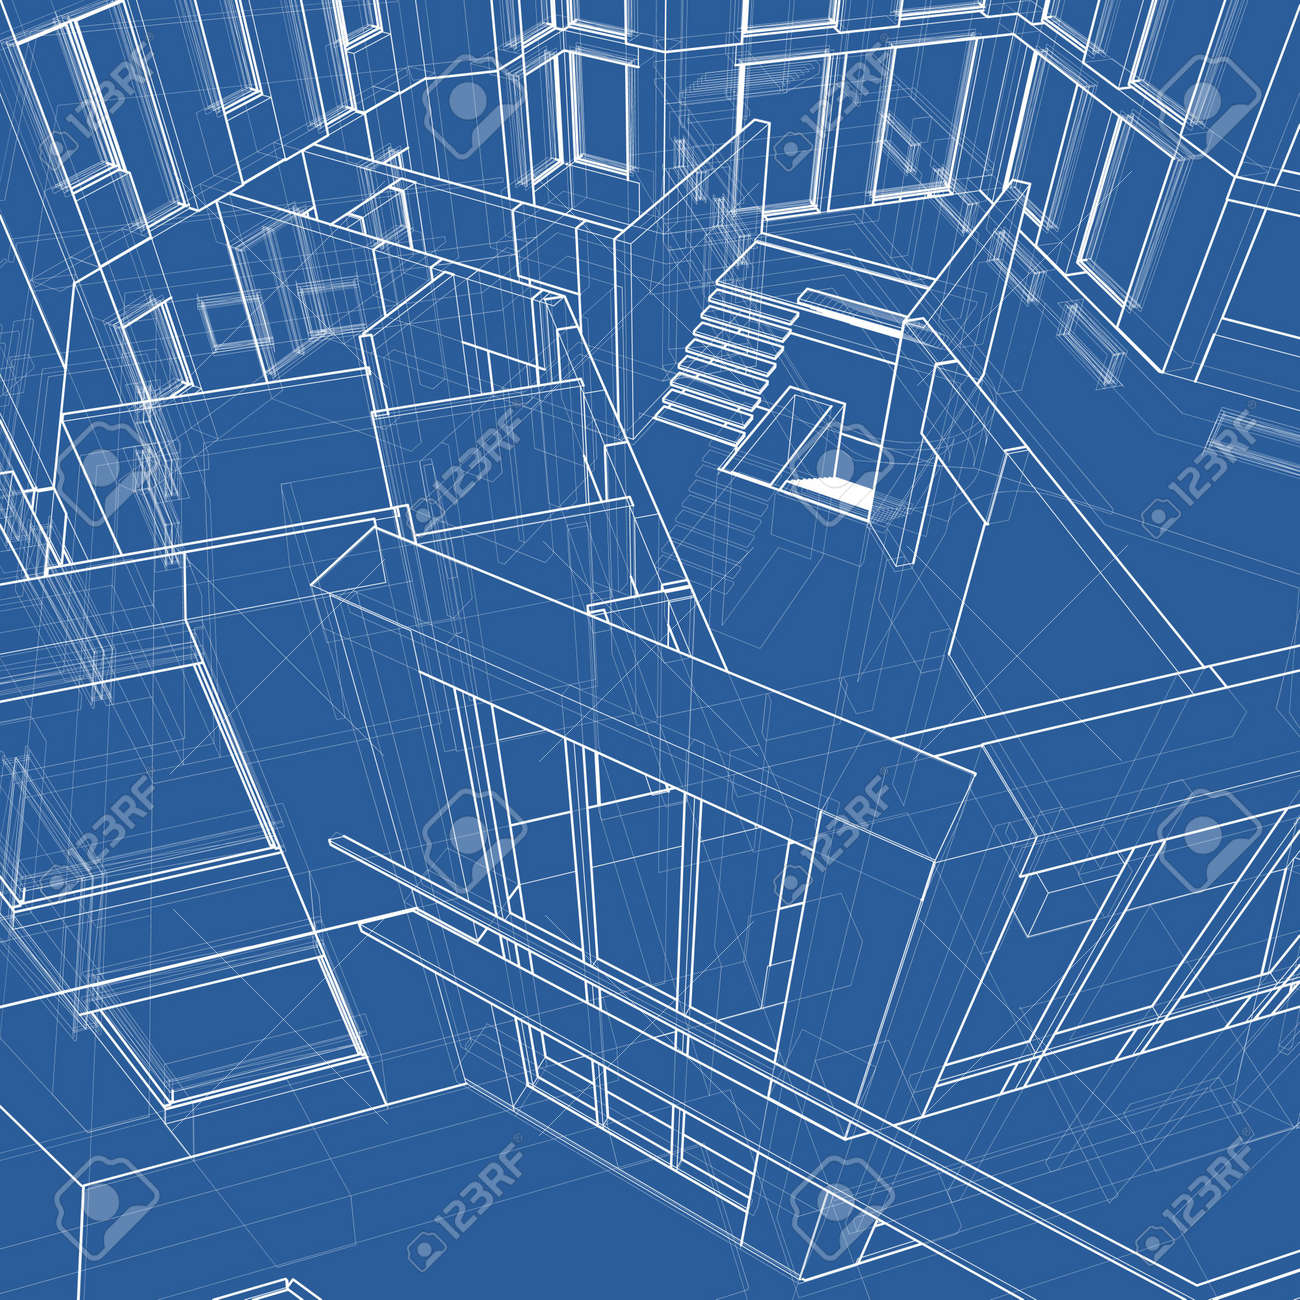 House blueprint 3d technical draw stock photo picture and royalty house blueprint 3d technical draw stock photo 2886141 malvernweather Gallery